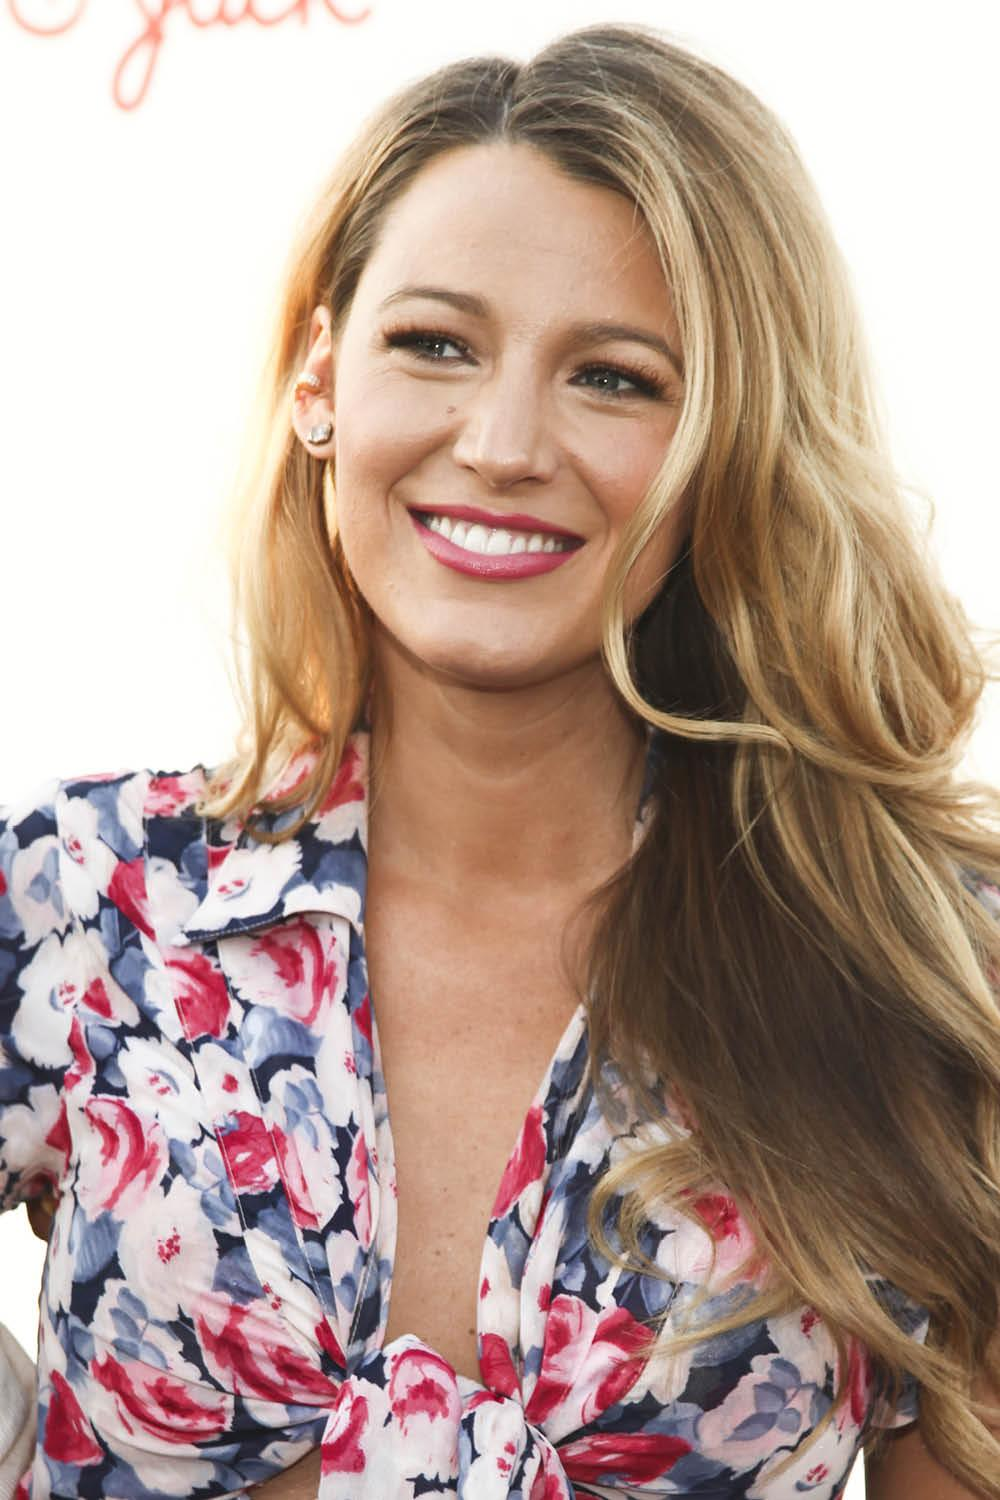 Blake Lively horoscopo virgo. Apuesta por productos naturales